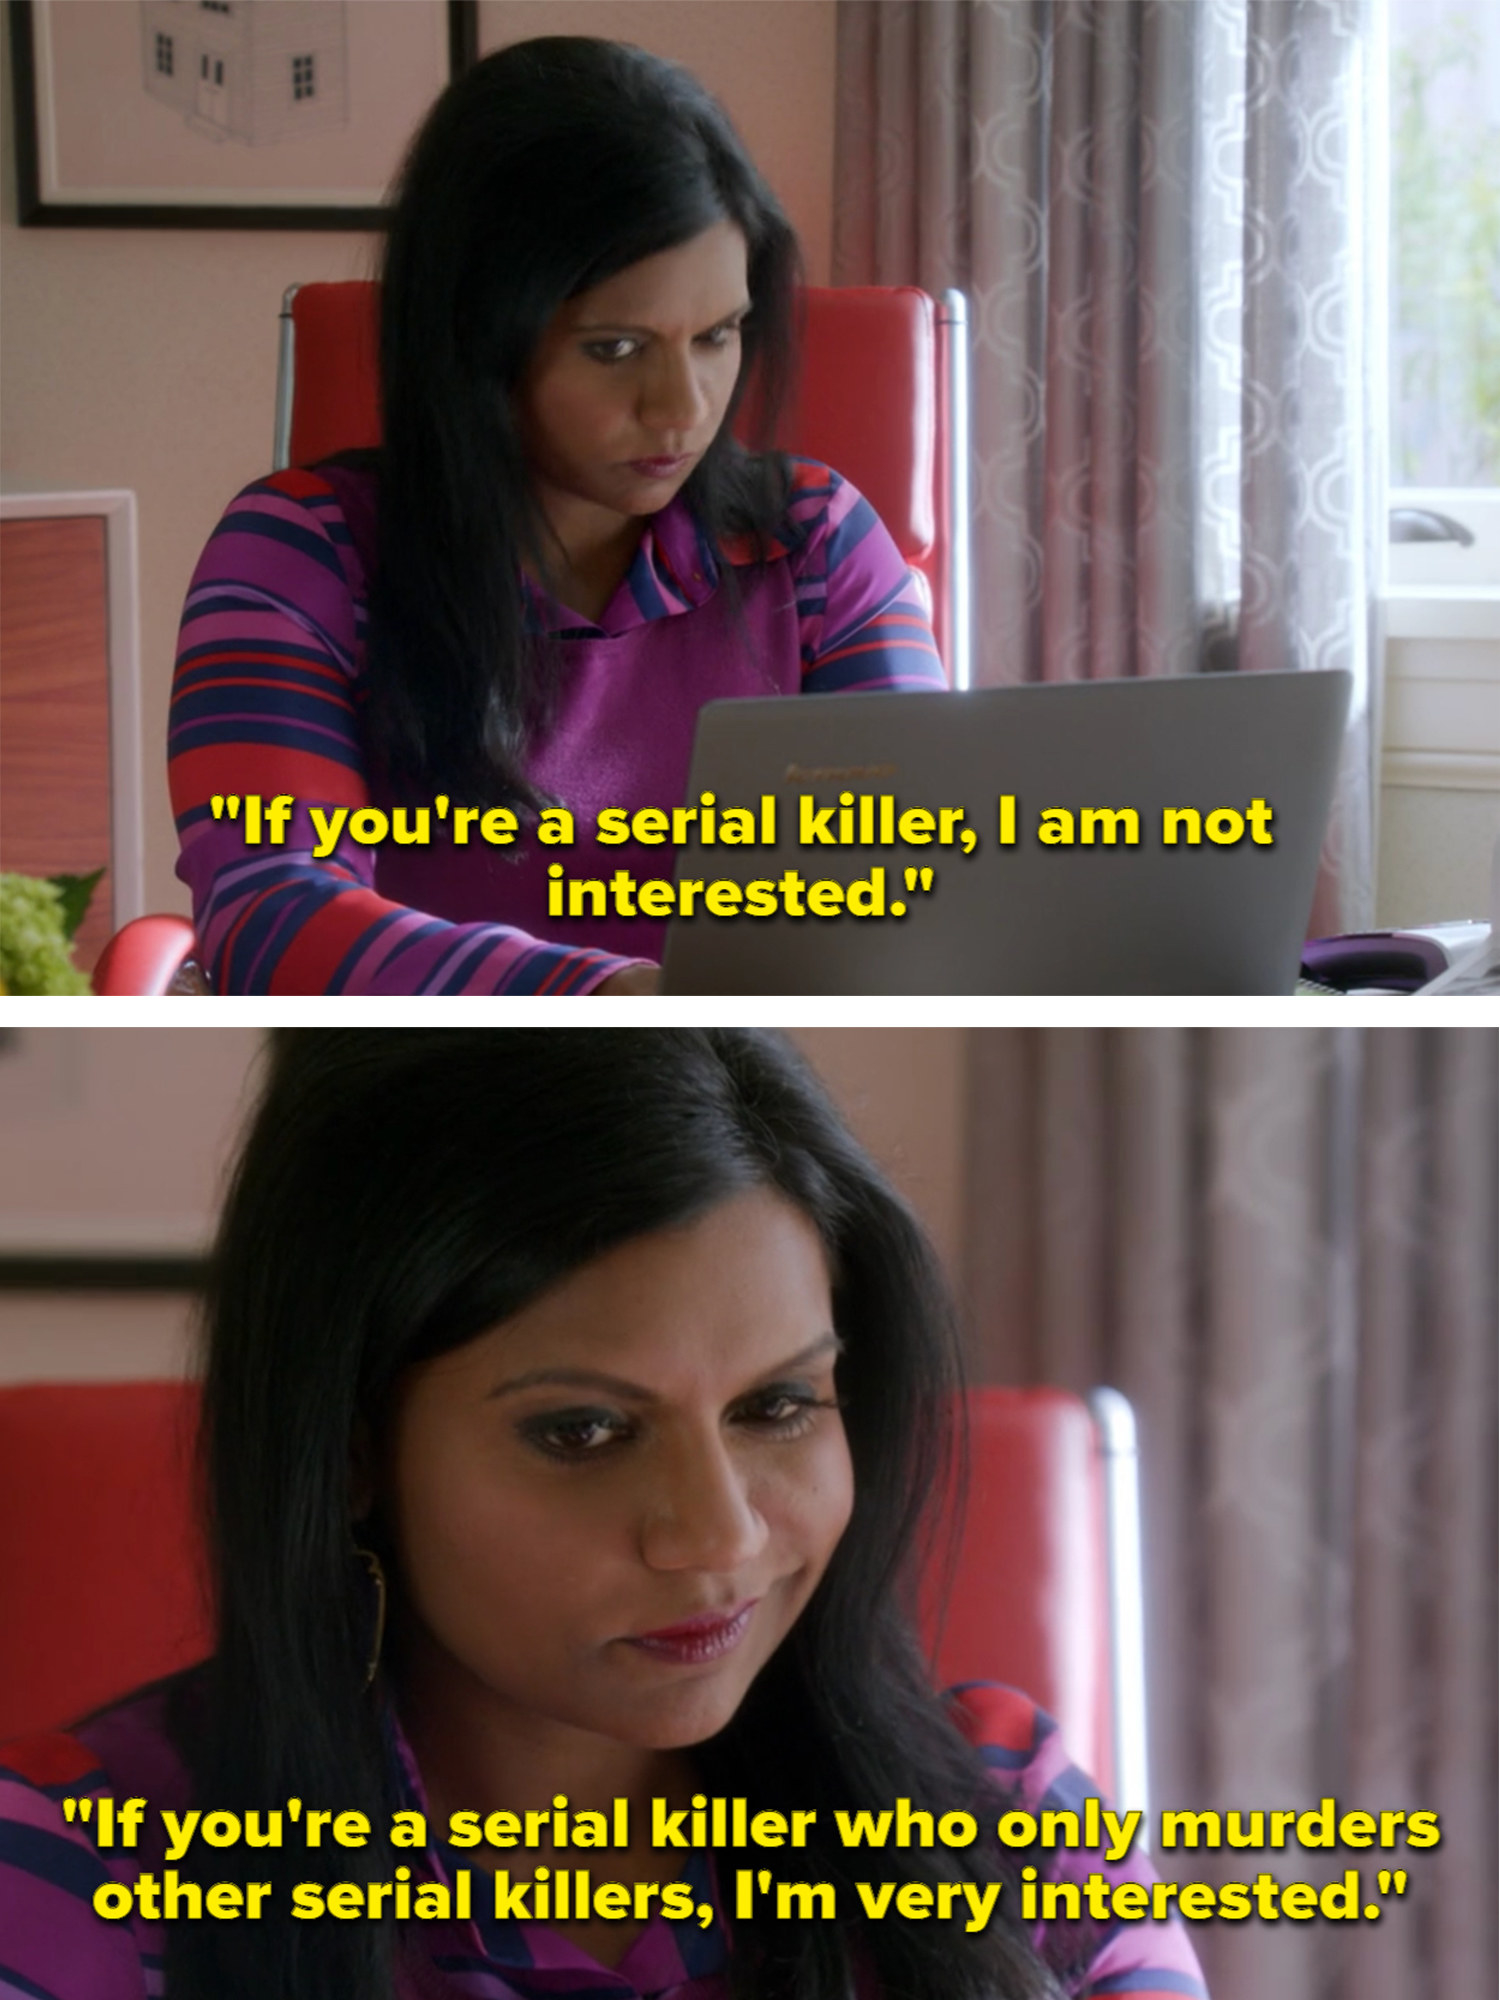 Mindy is writing to a mystery man online who reached out to her. She makes it clear that she's not interested if he's a serial killer, but she is interested if he's a serial killer that murders other serial killers